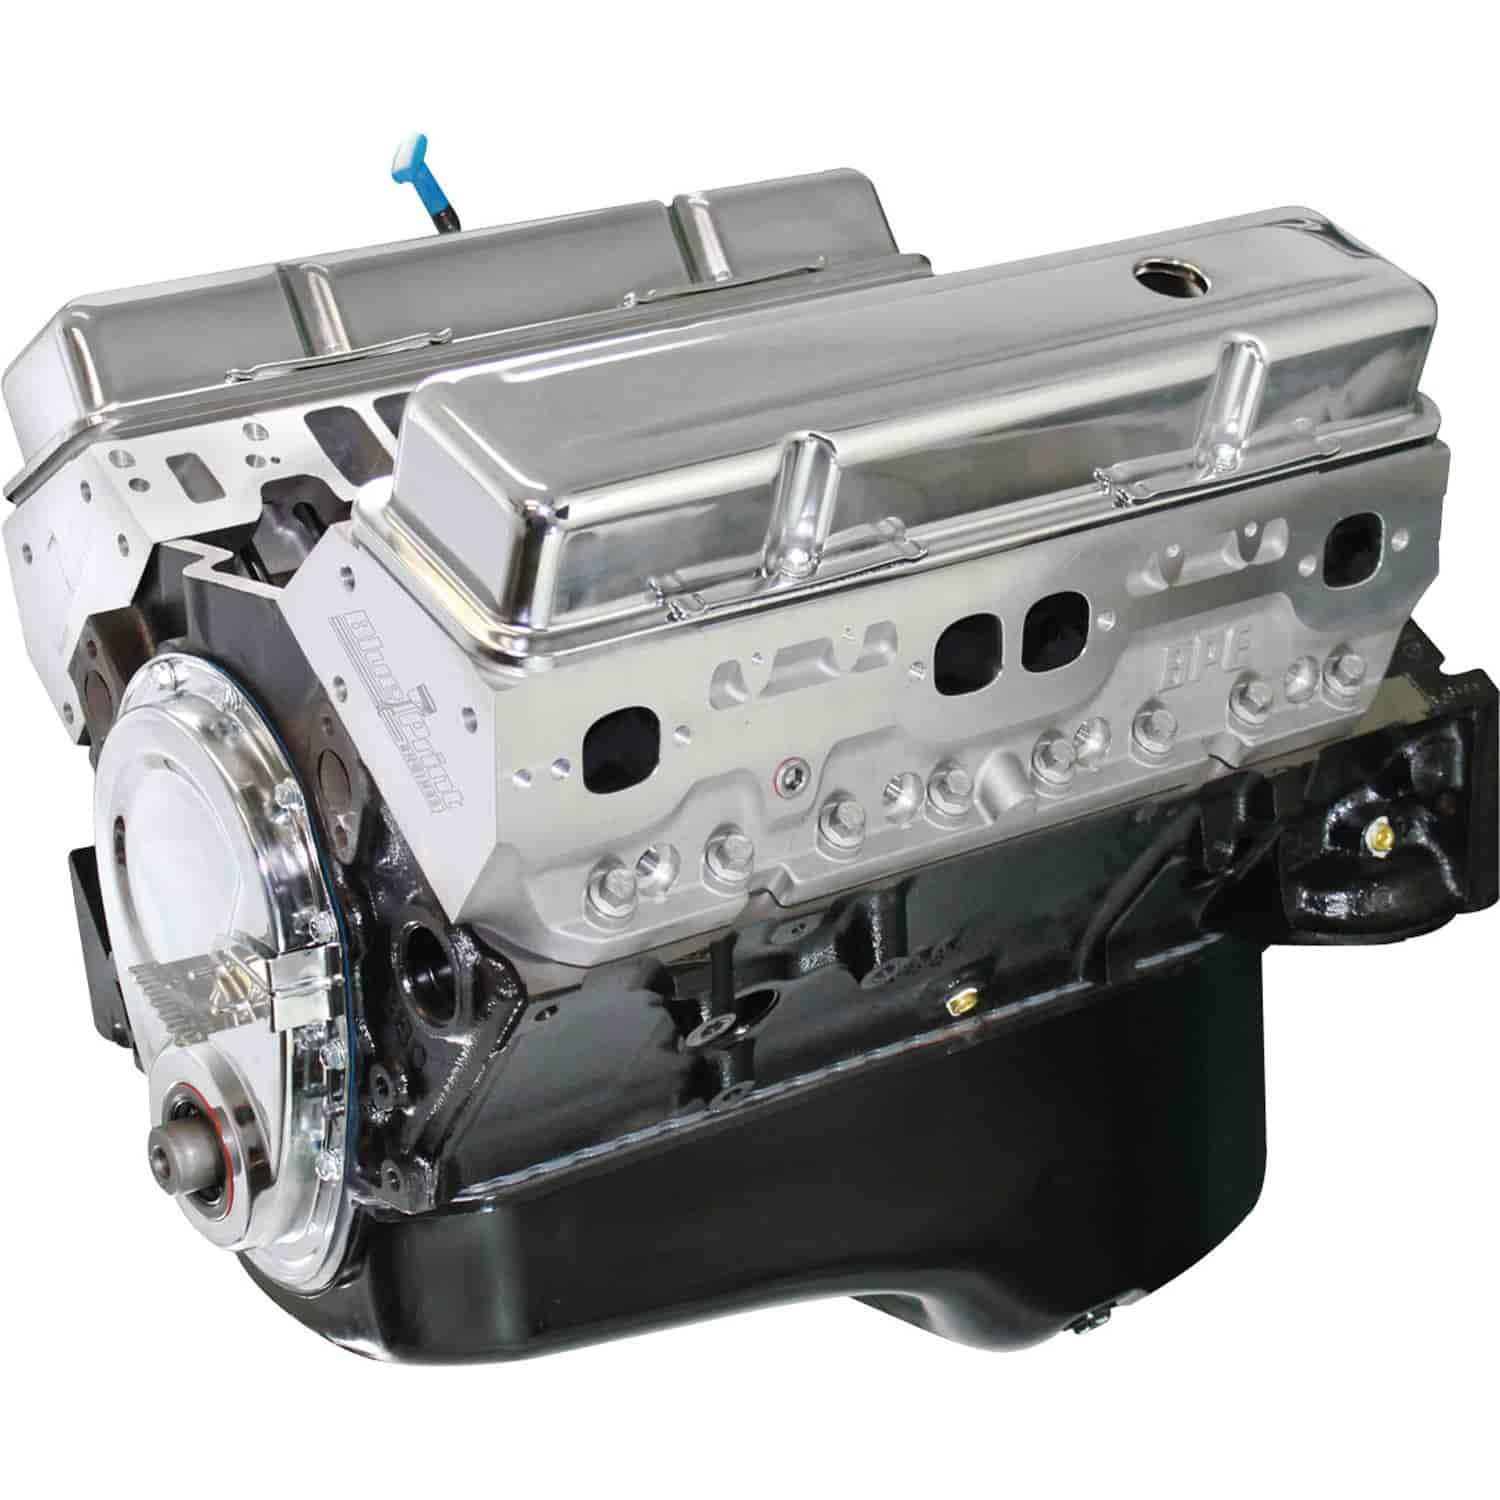 Blueprint Engines BP38313CT1 - Blueprint Engines Small Block Chevy 383ci/ 430HP/ 450TQ